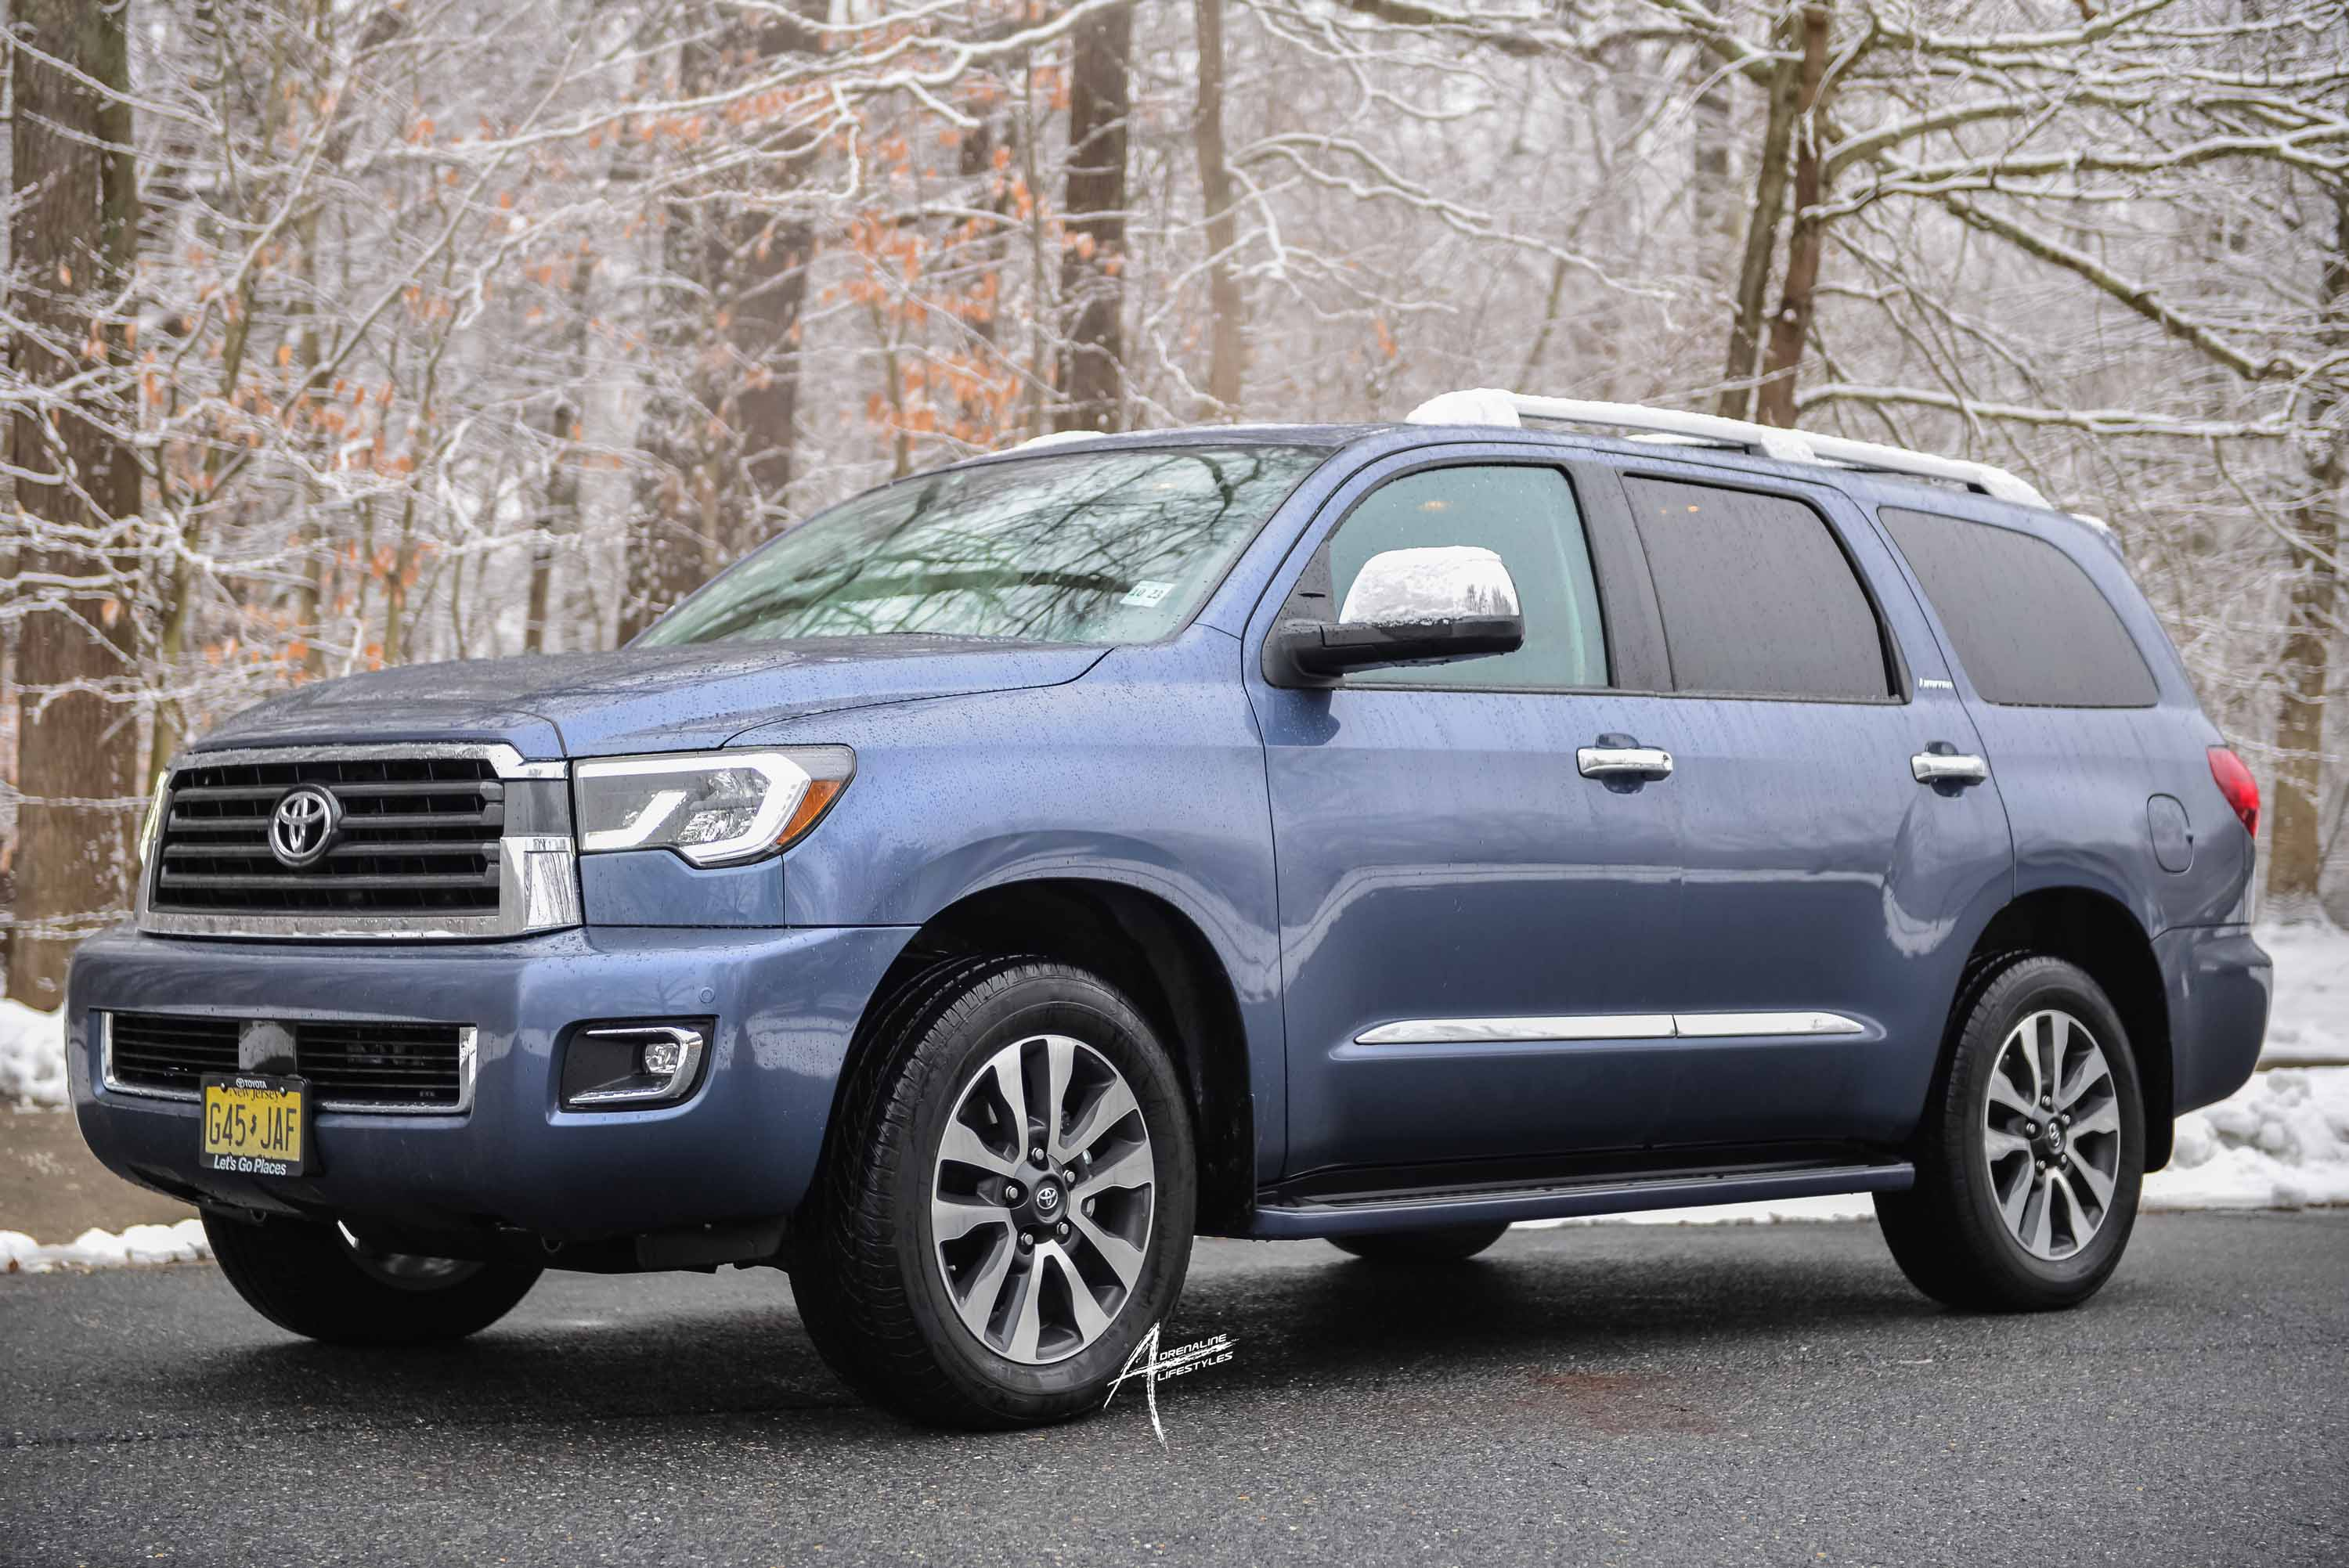 Winter time in the 2019 Toyota Sequoia - Adrenaline Lifestyles